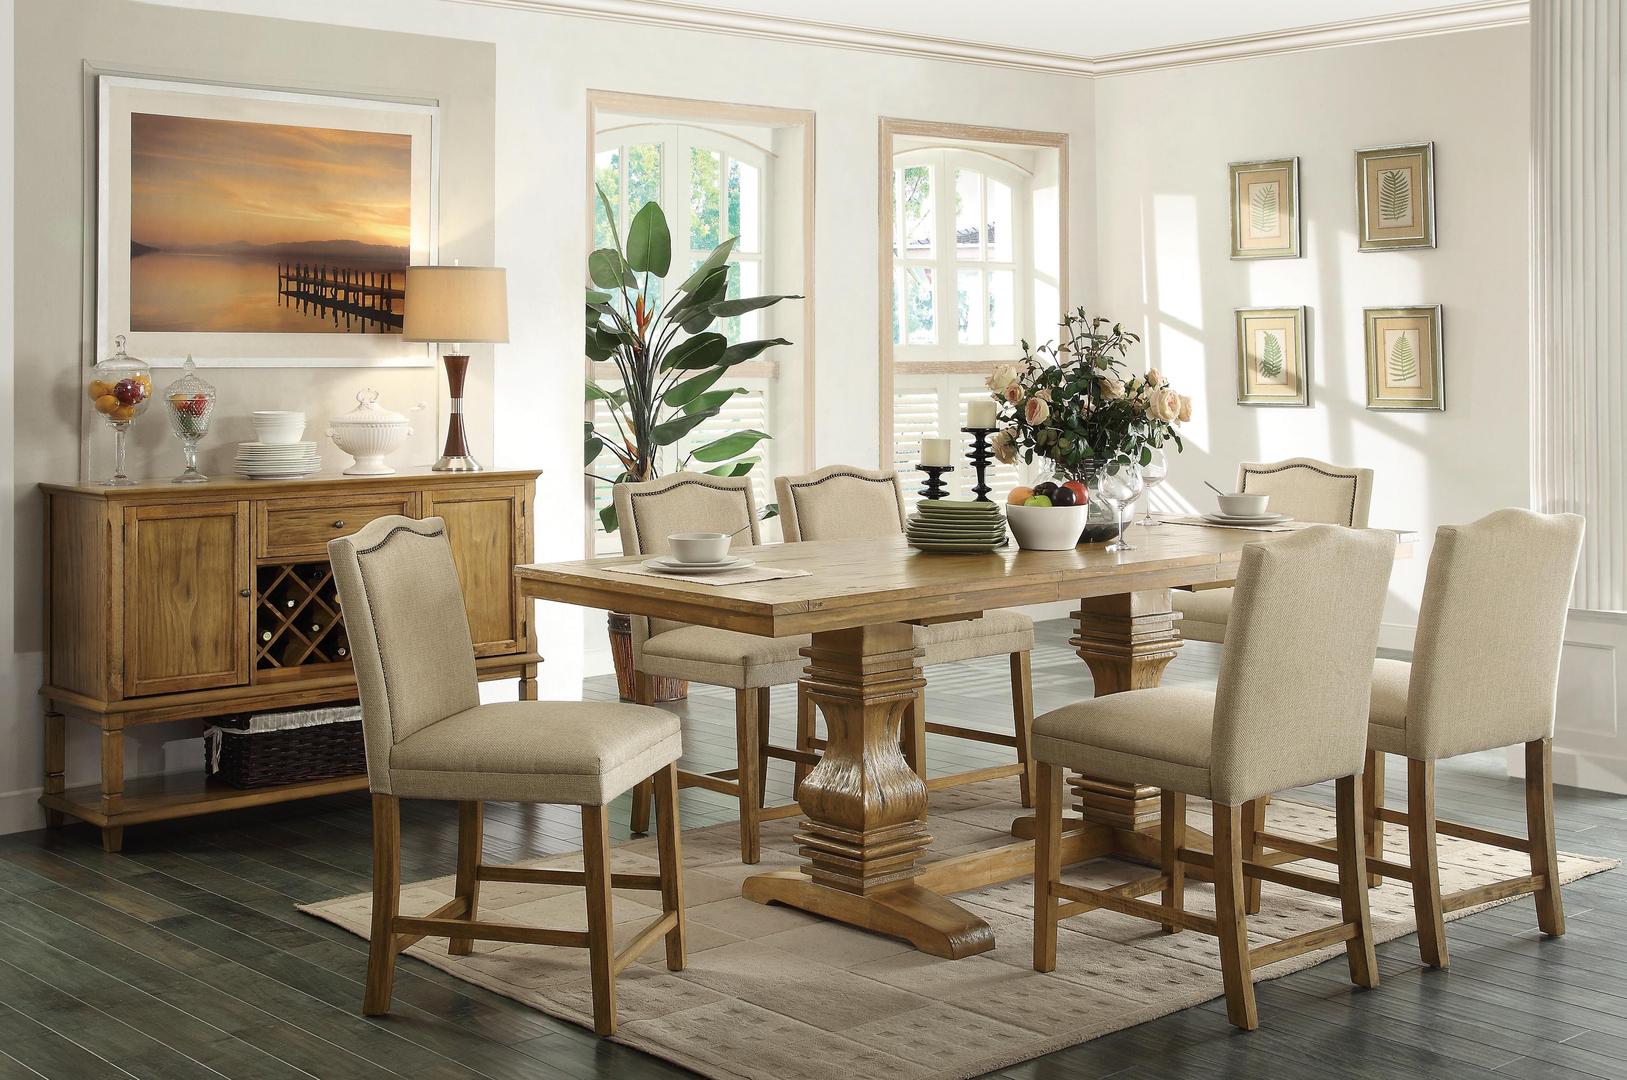 25 Best Ideas About Casual Dining Rooms On Pinterest Glass. 114 ...